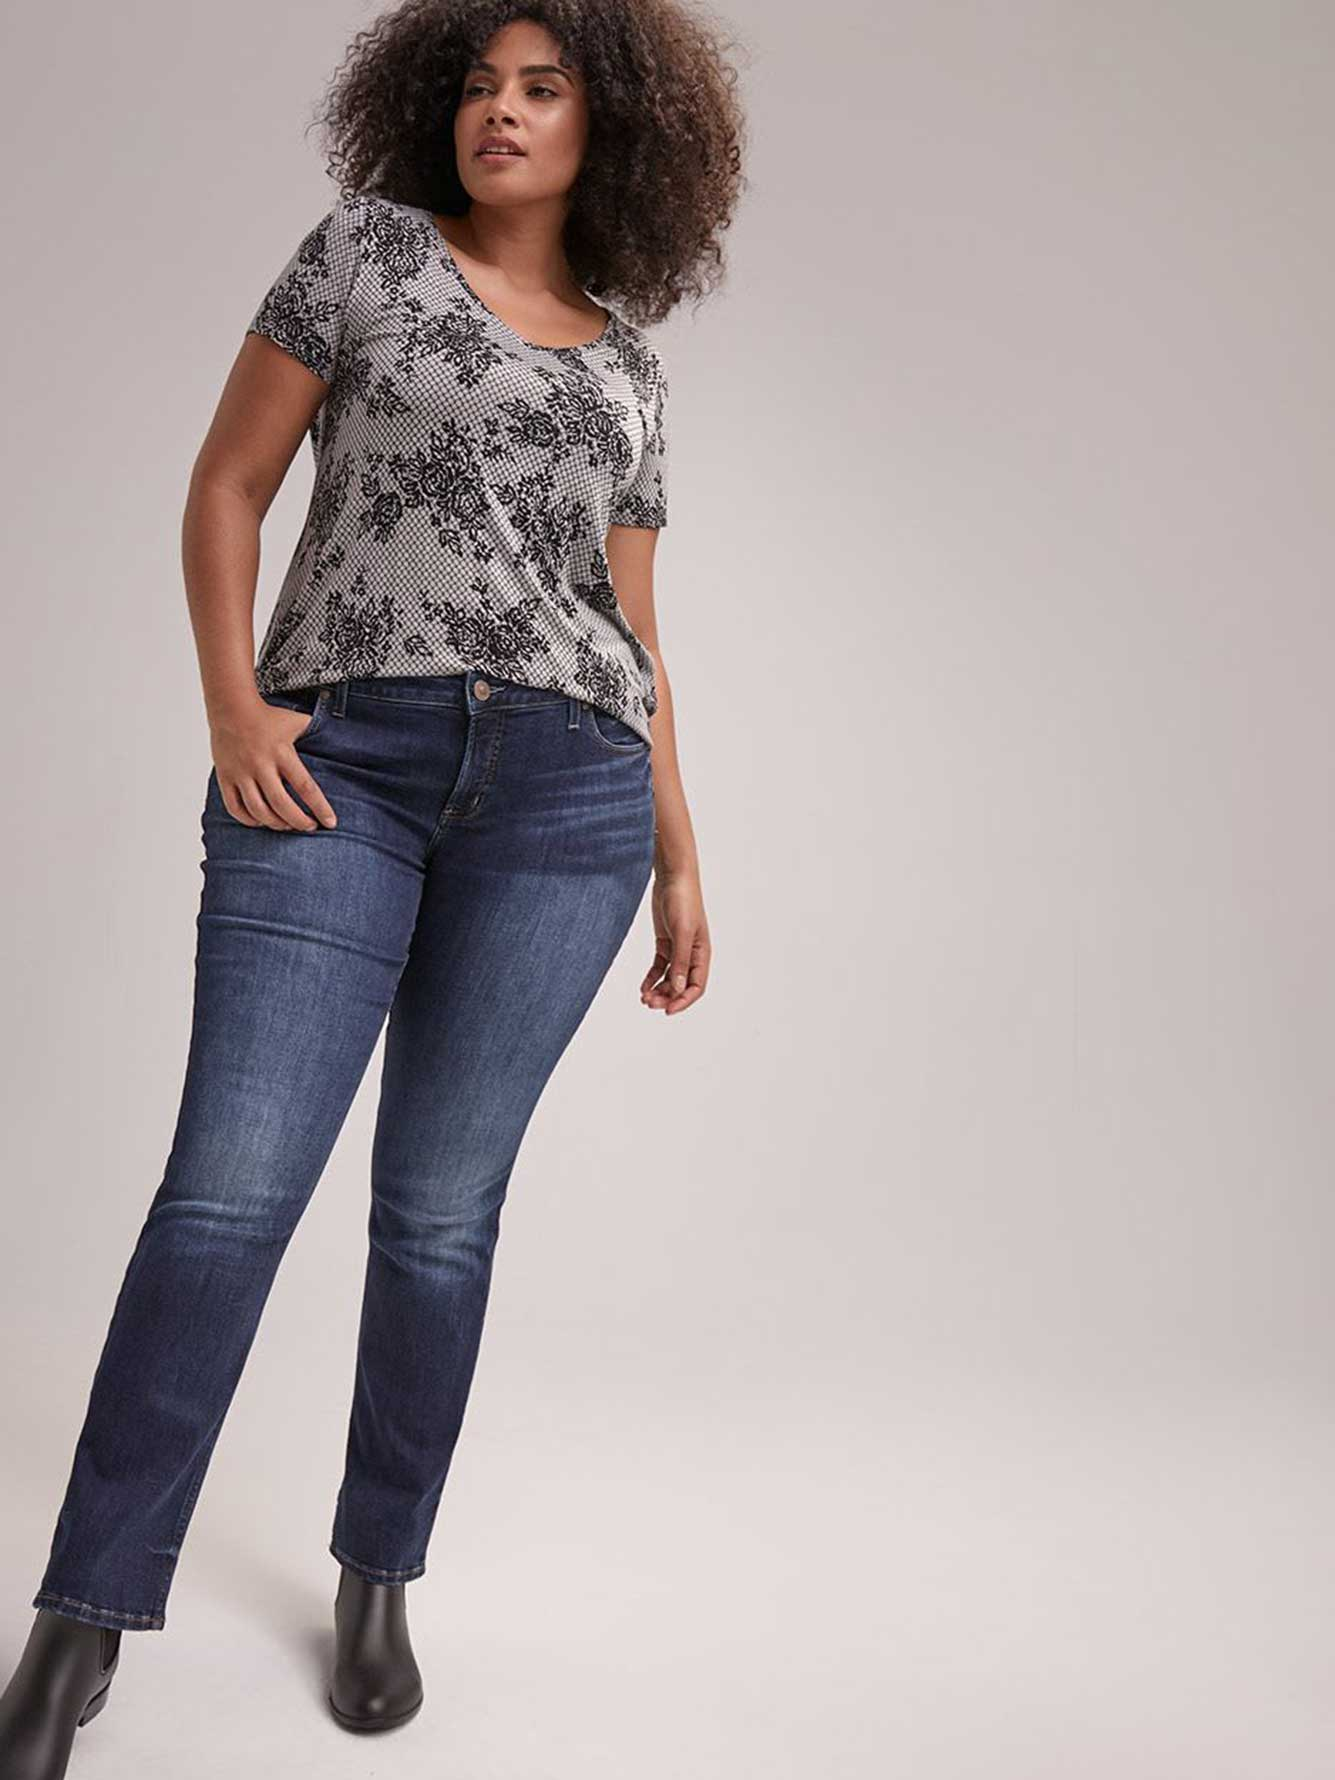 Straight Jeans - Silver Elyse